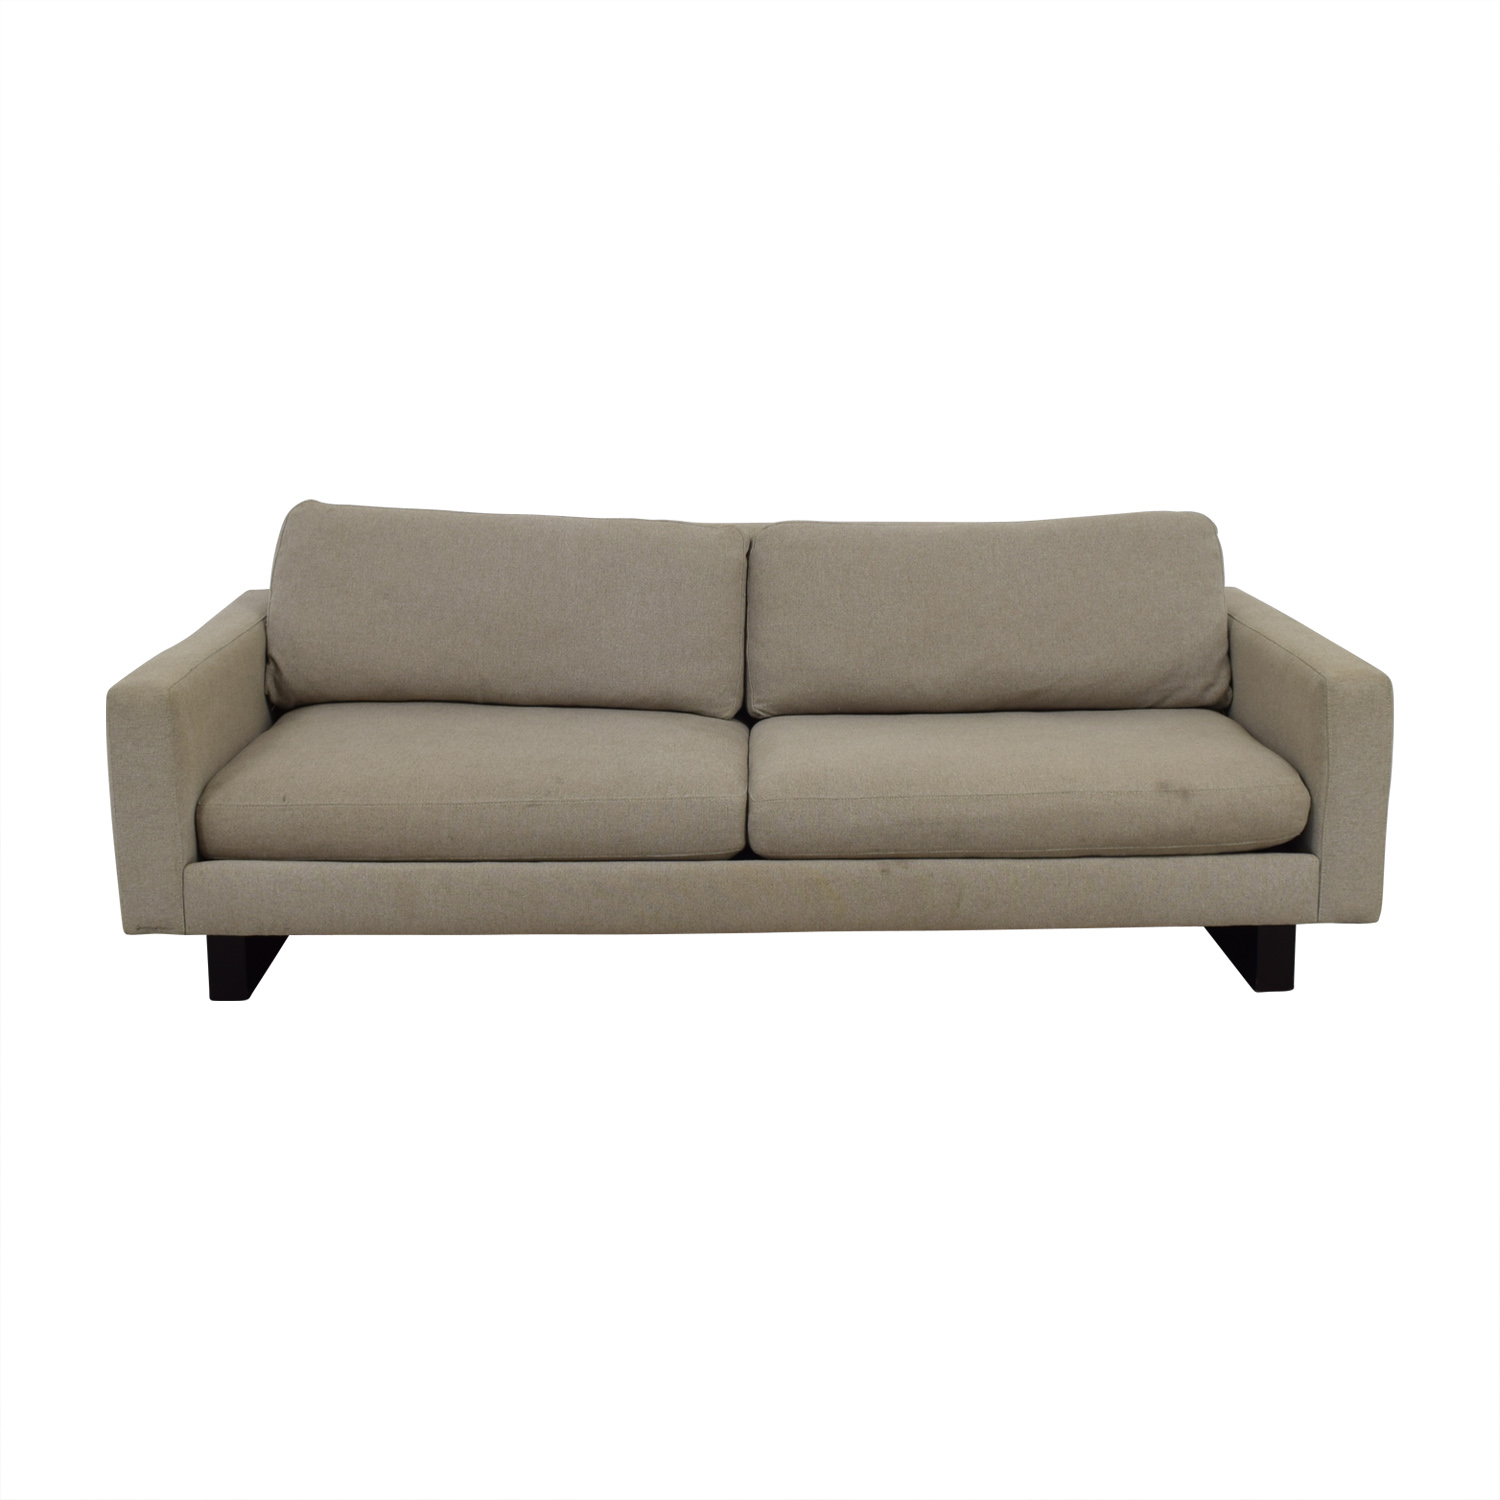 shop Room & Board Beige Hess Two-Cushion Sofa Room & Board Sofas